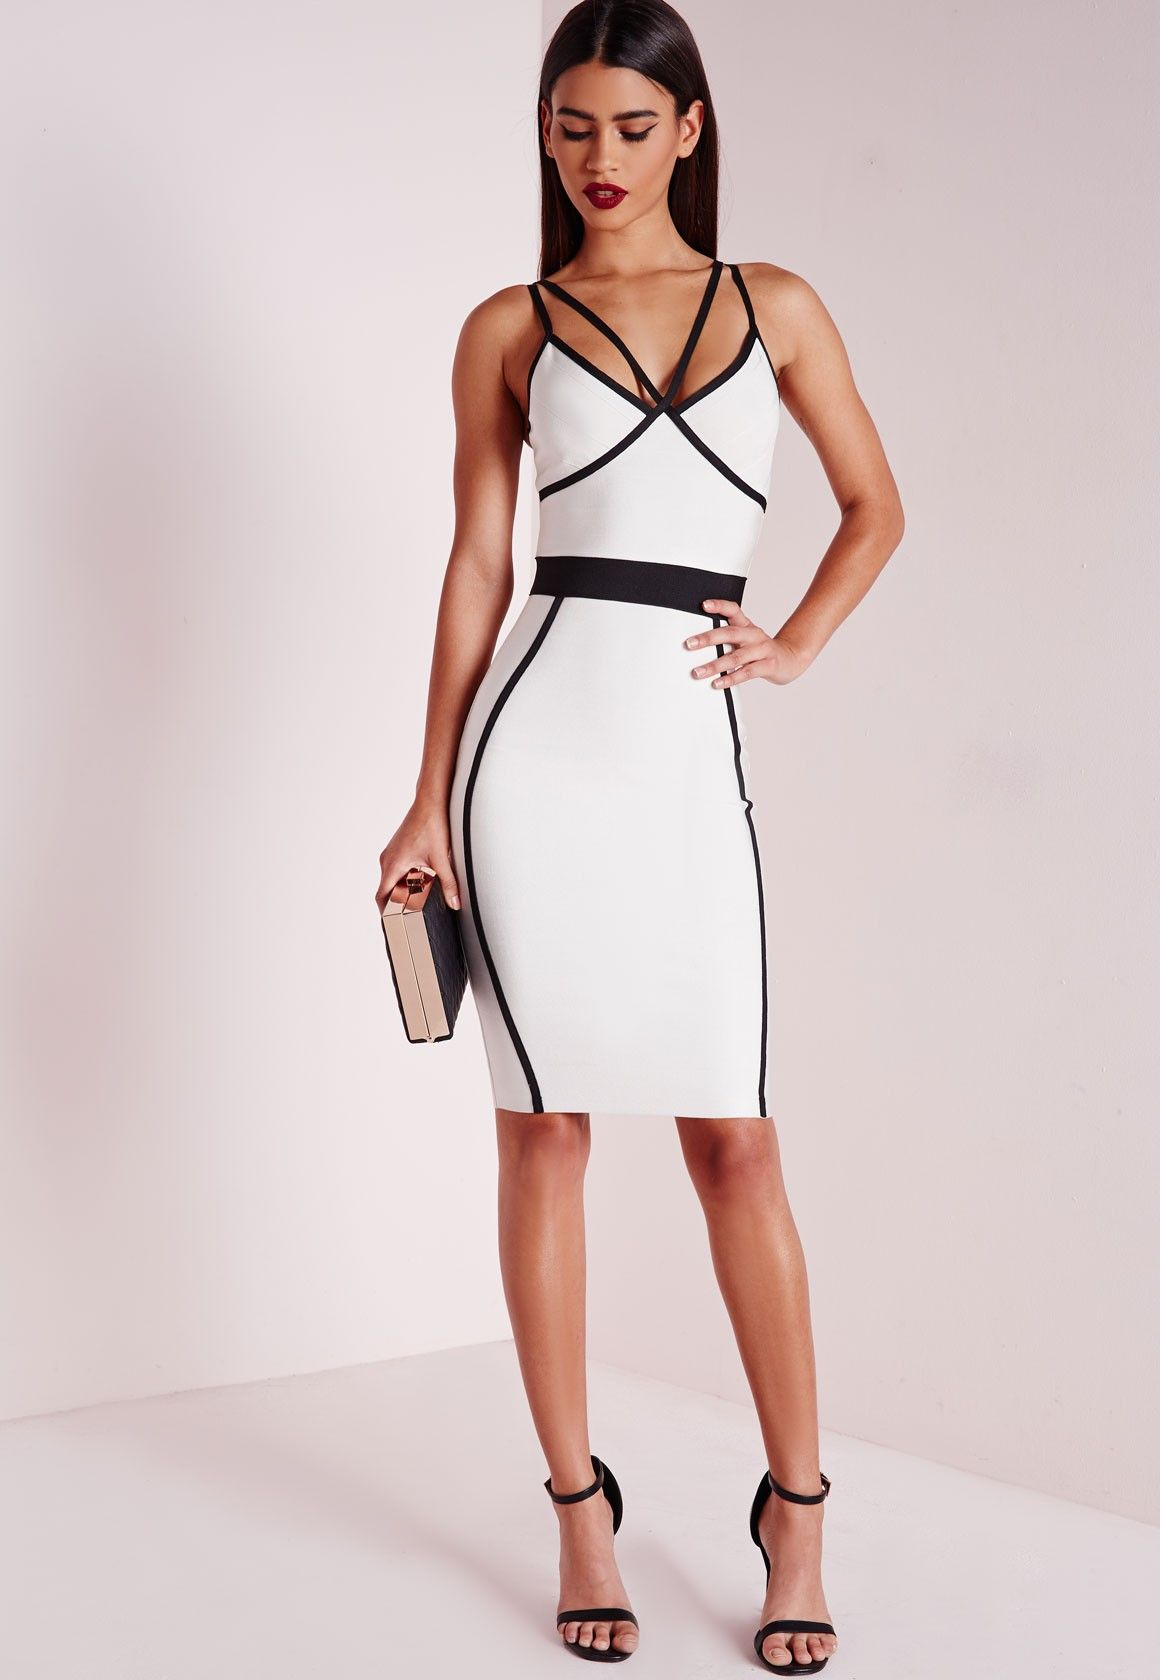 1aacf90a53 Missguided - Premium Contrast Piping Bandage Bodycon Dress Mono ...